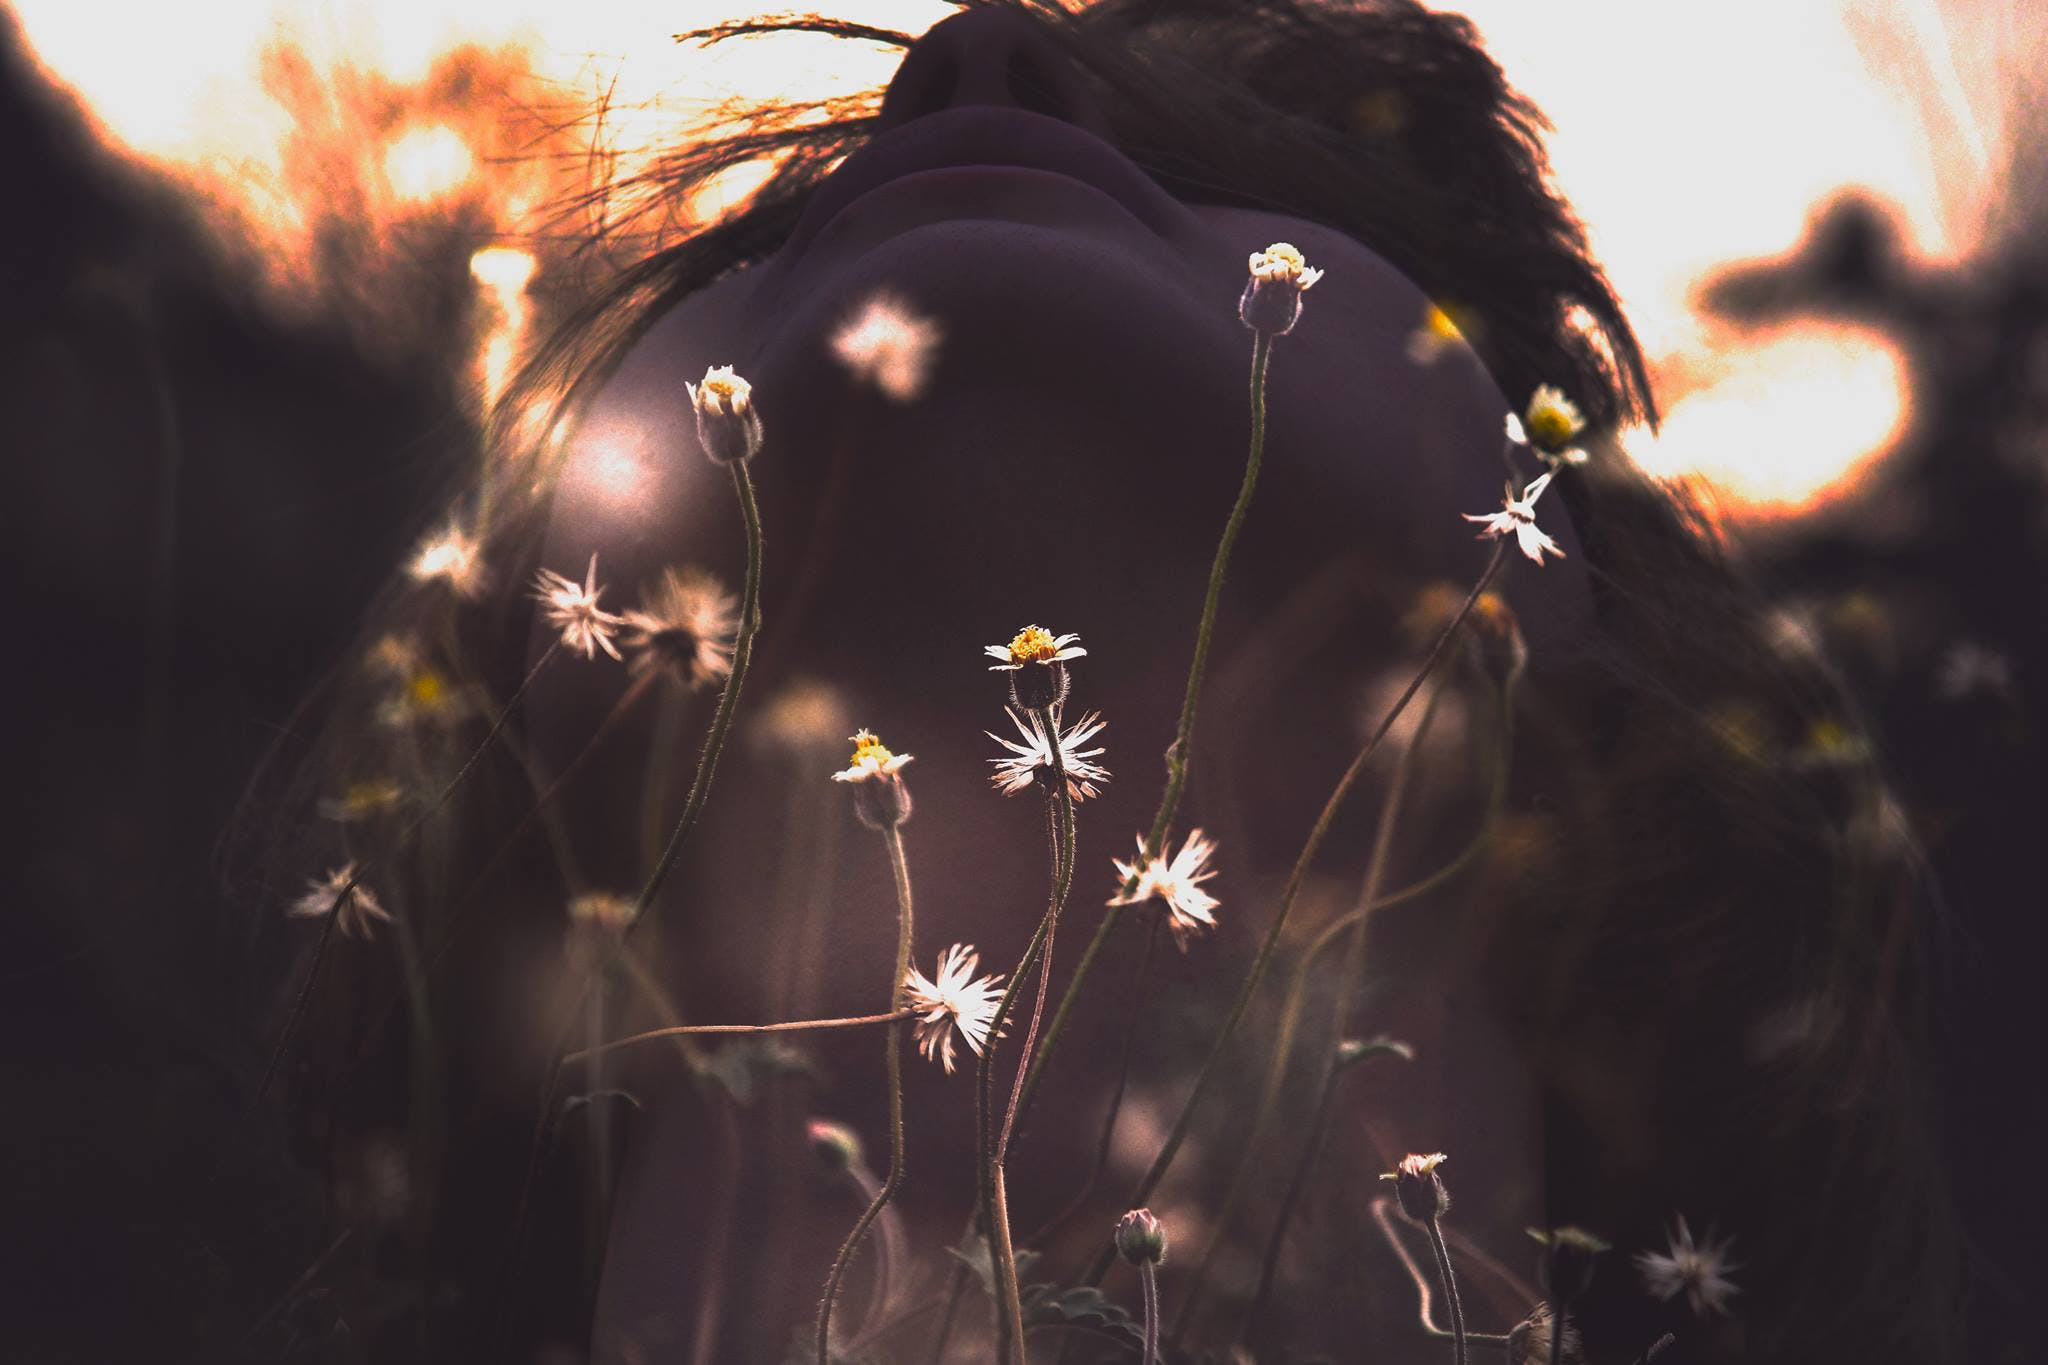 Free stock photo of nature, person, woman, flowers